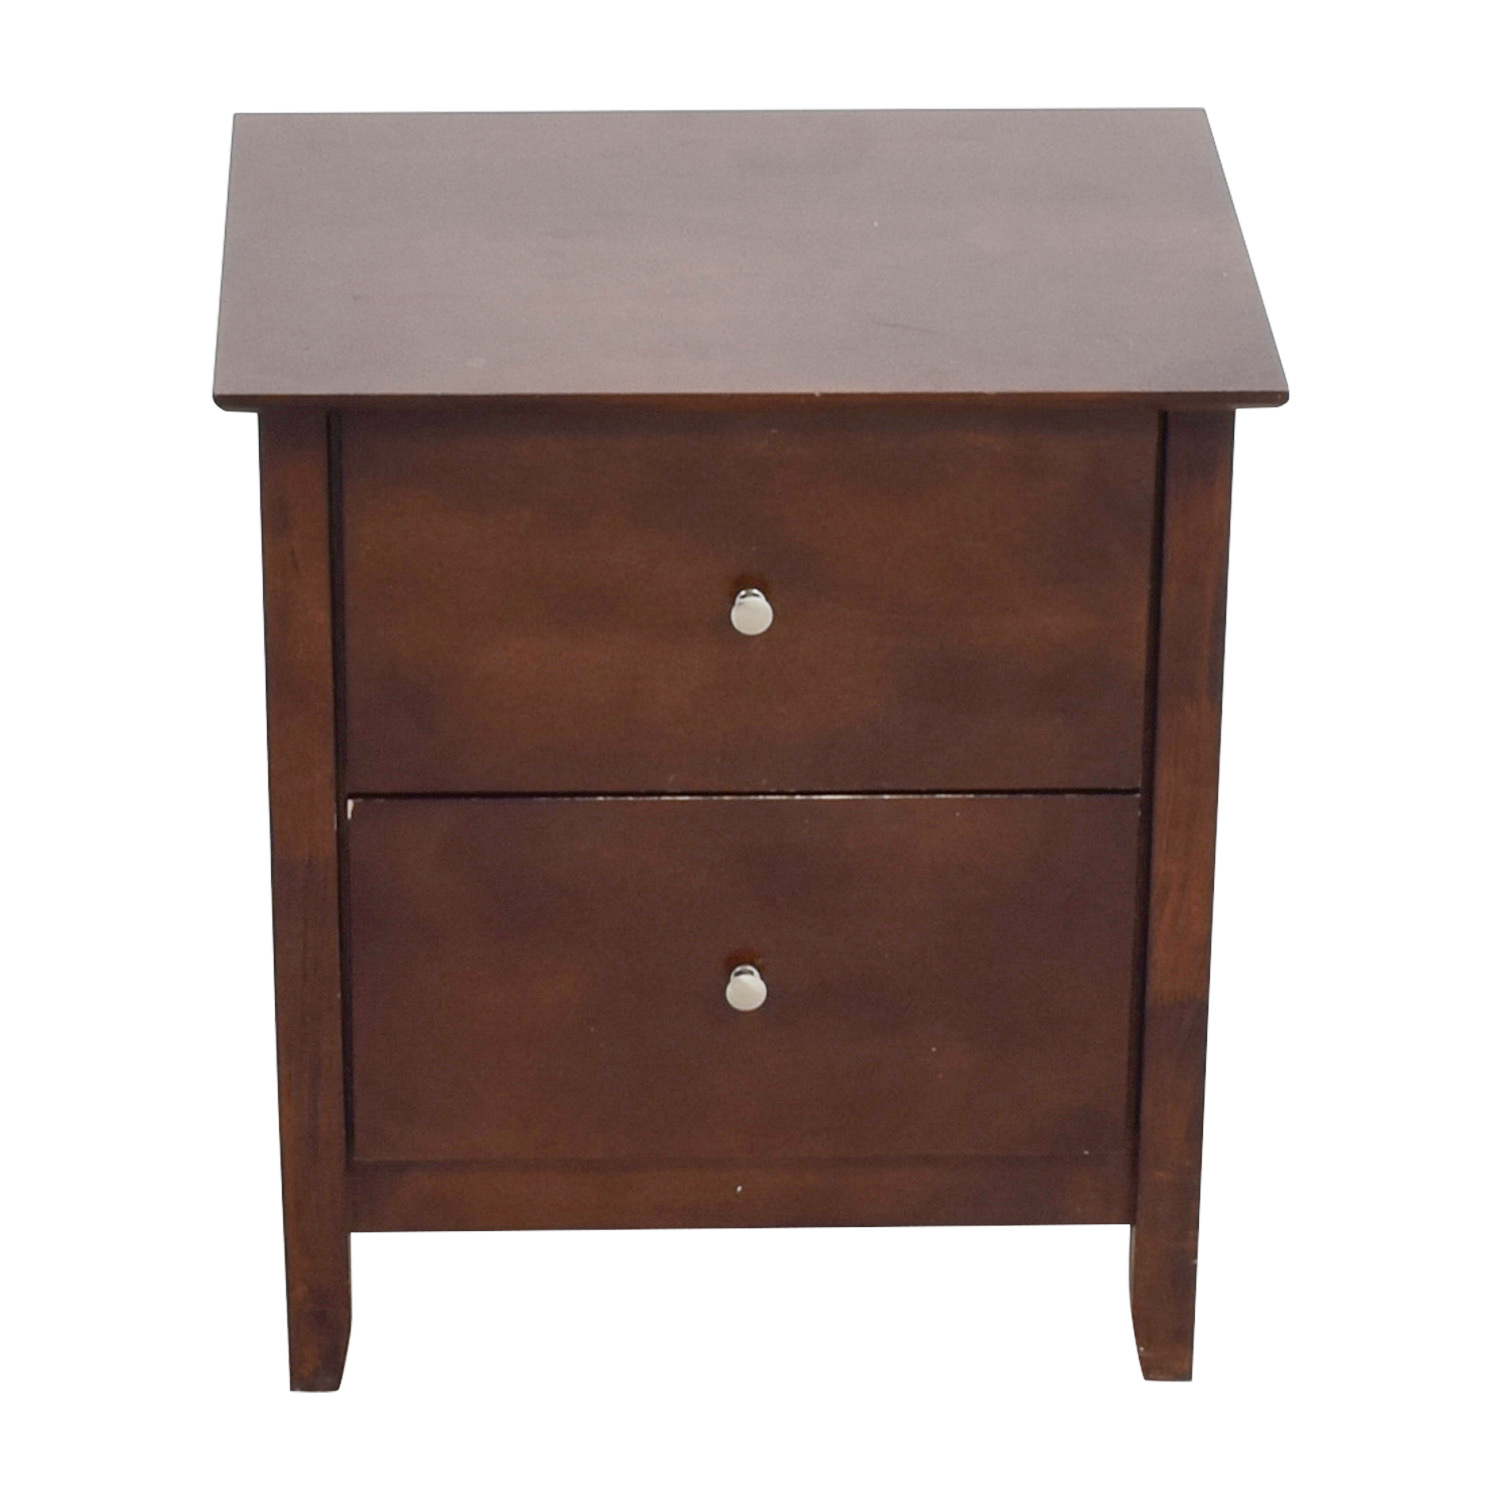 buy Bobs Furniture Two-Drawer Nightstand Bobs Discount Furniture Tables